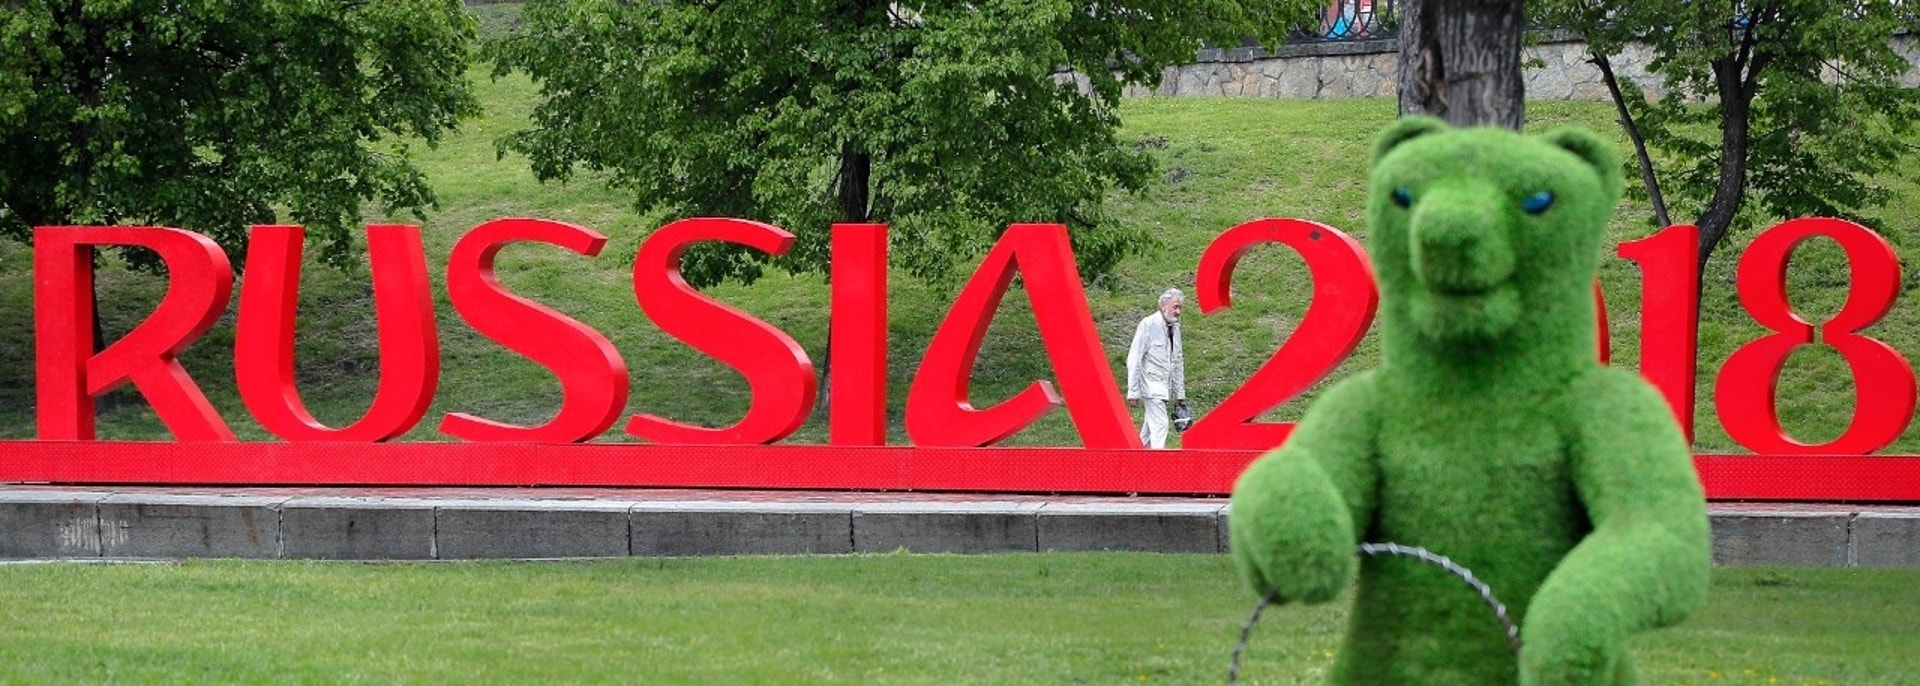 A man walks past a World Cup sign near the fan zone during the 2018 soccer World Cup in Yekaterinburg, Russia, Wednesday, June 13, 2018. (AP Photo/Vadim Ghirda)